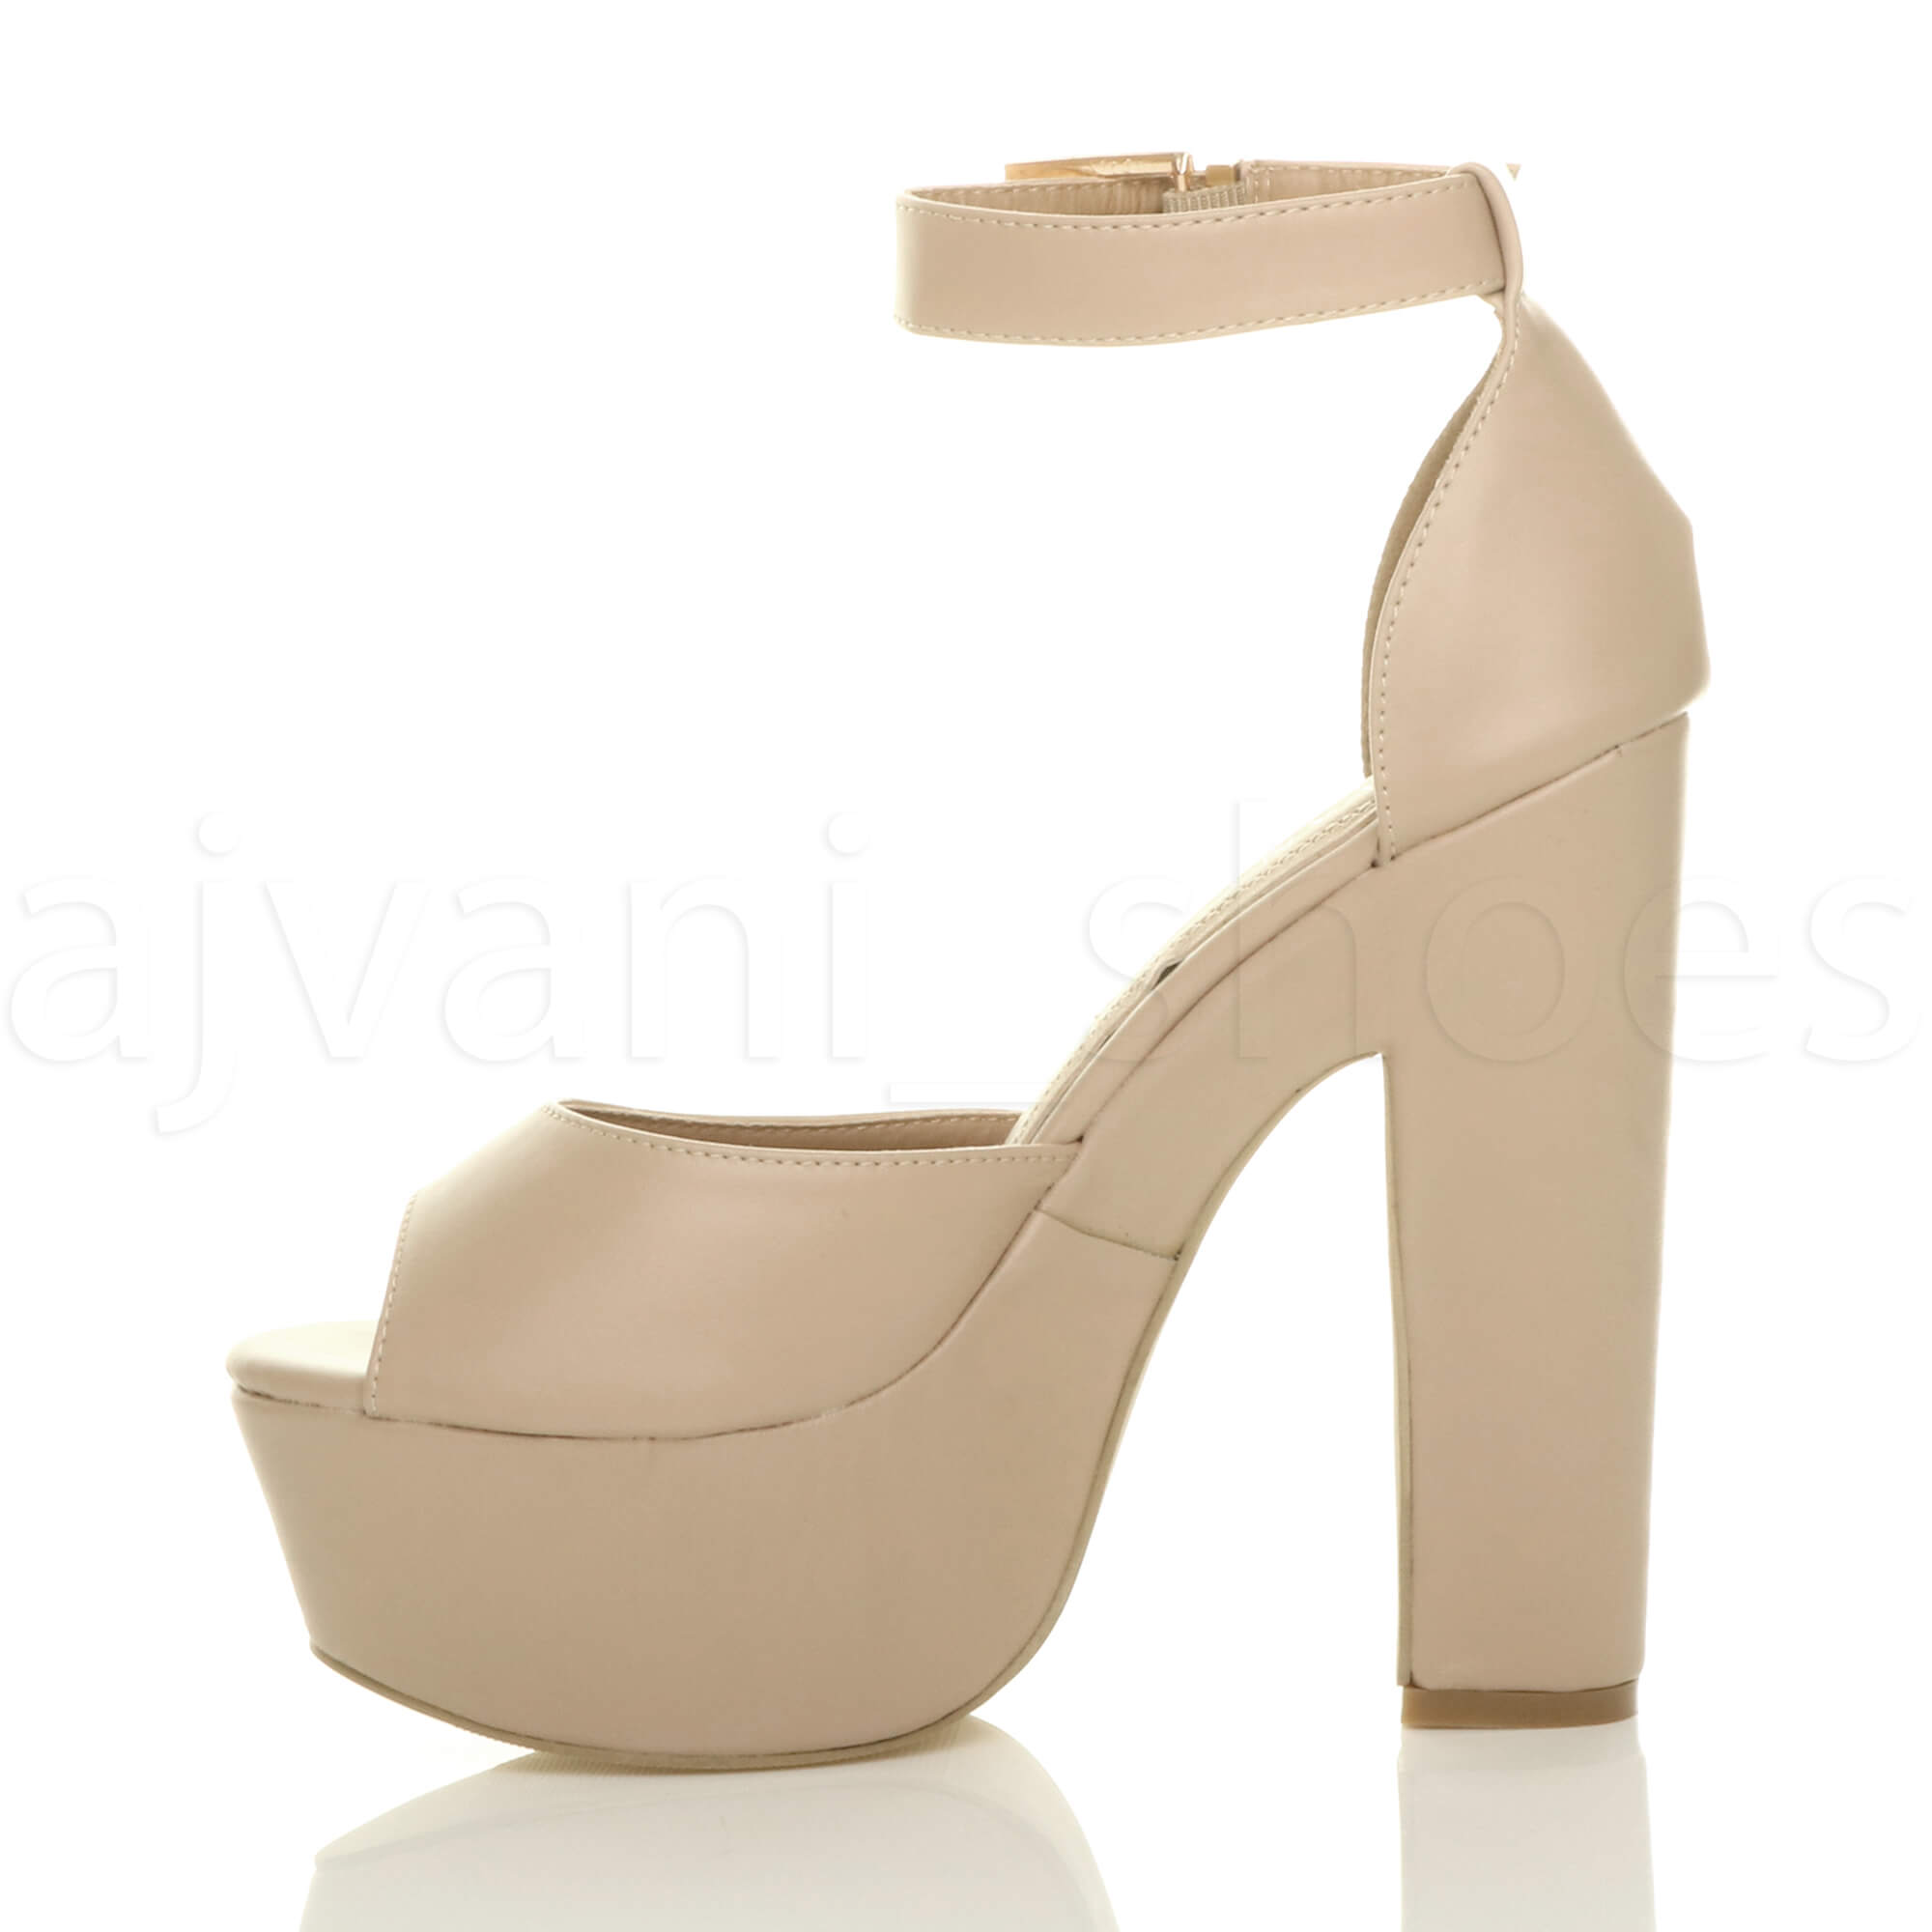 WOMENS-LADIES-HIGH-HEEL-PLATFORM-ANKLE-STRAP-PEEP-TOE-SHOES-PARTY-SANDALS-SIZE